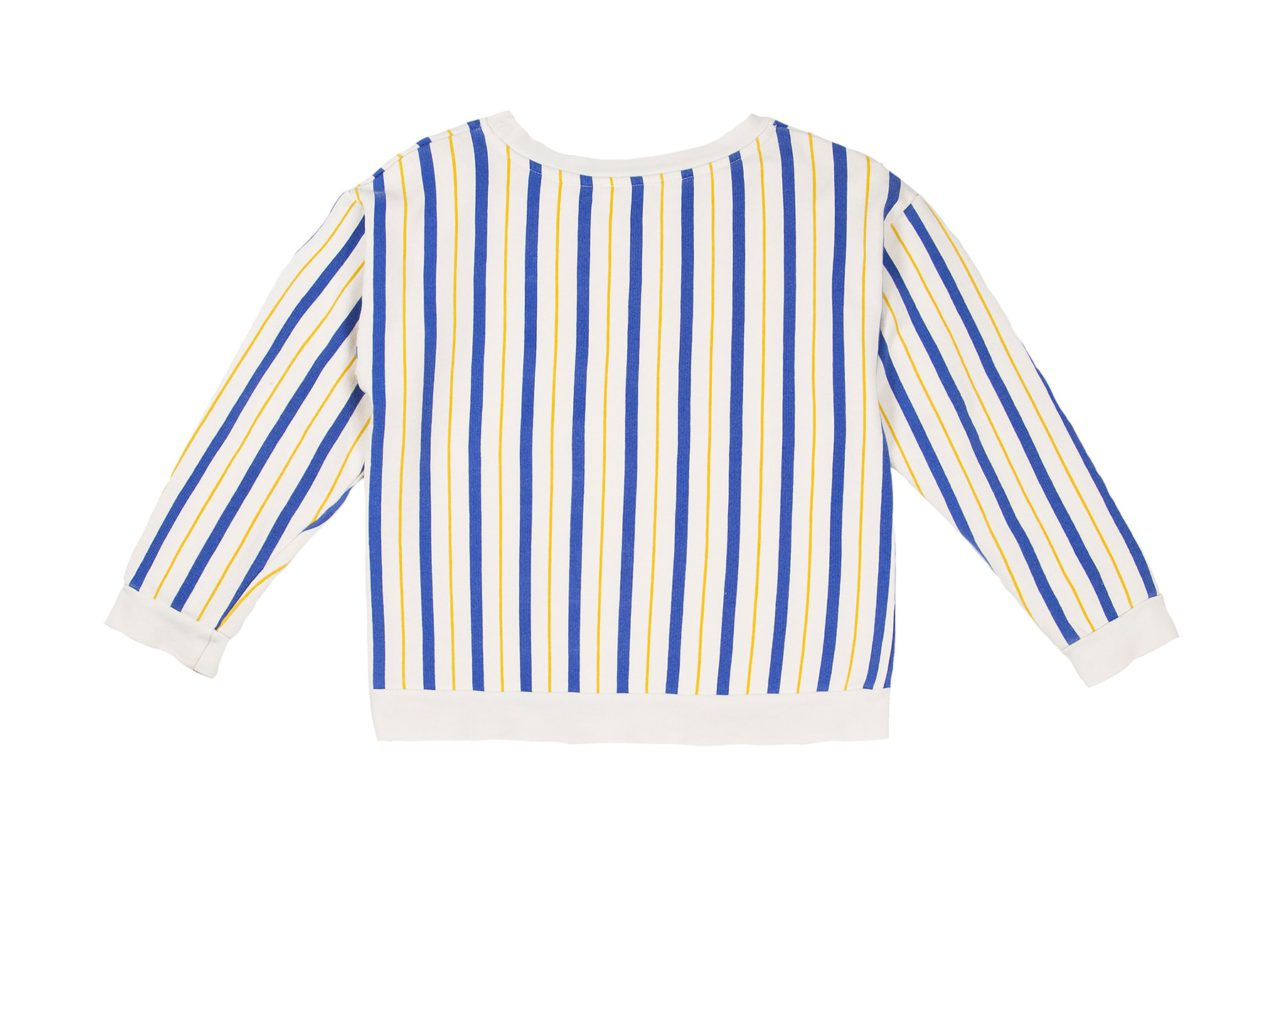 thecampamento_striped_sweatshirt_02b